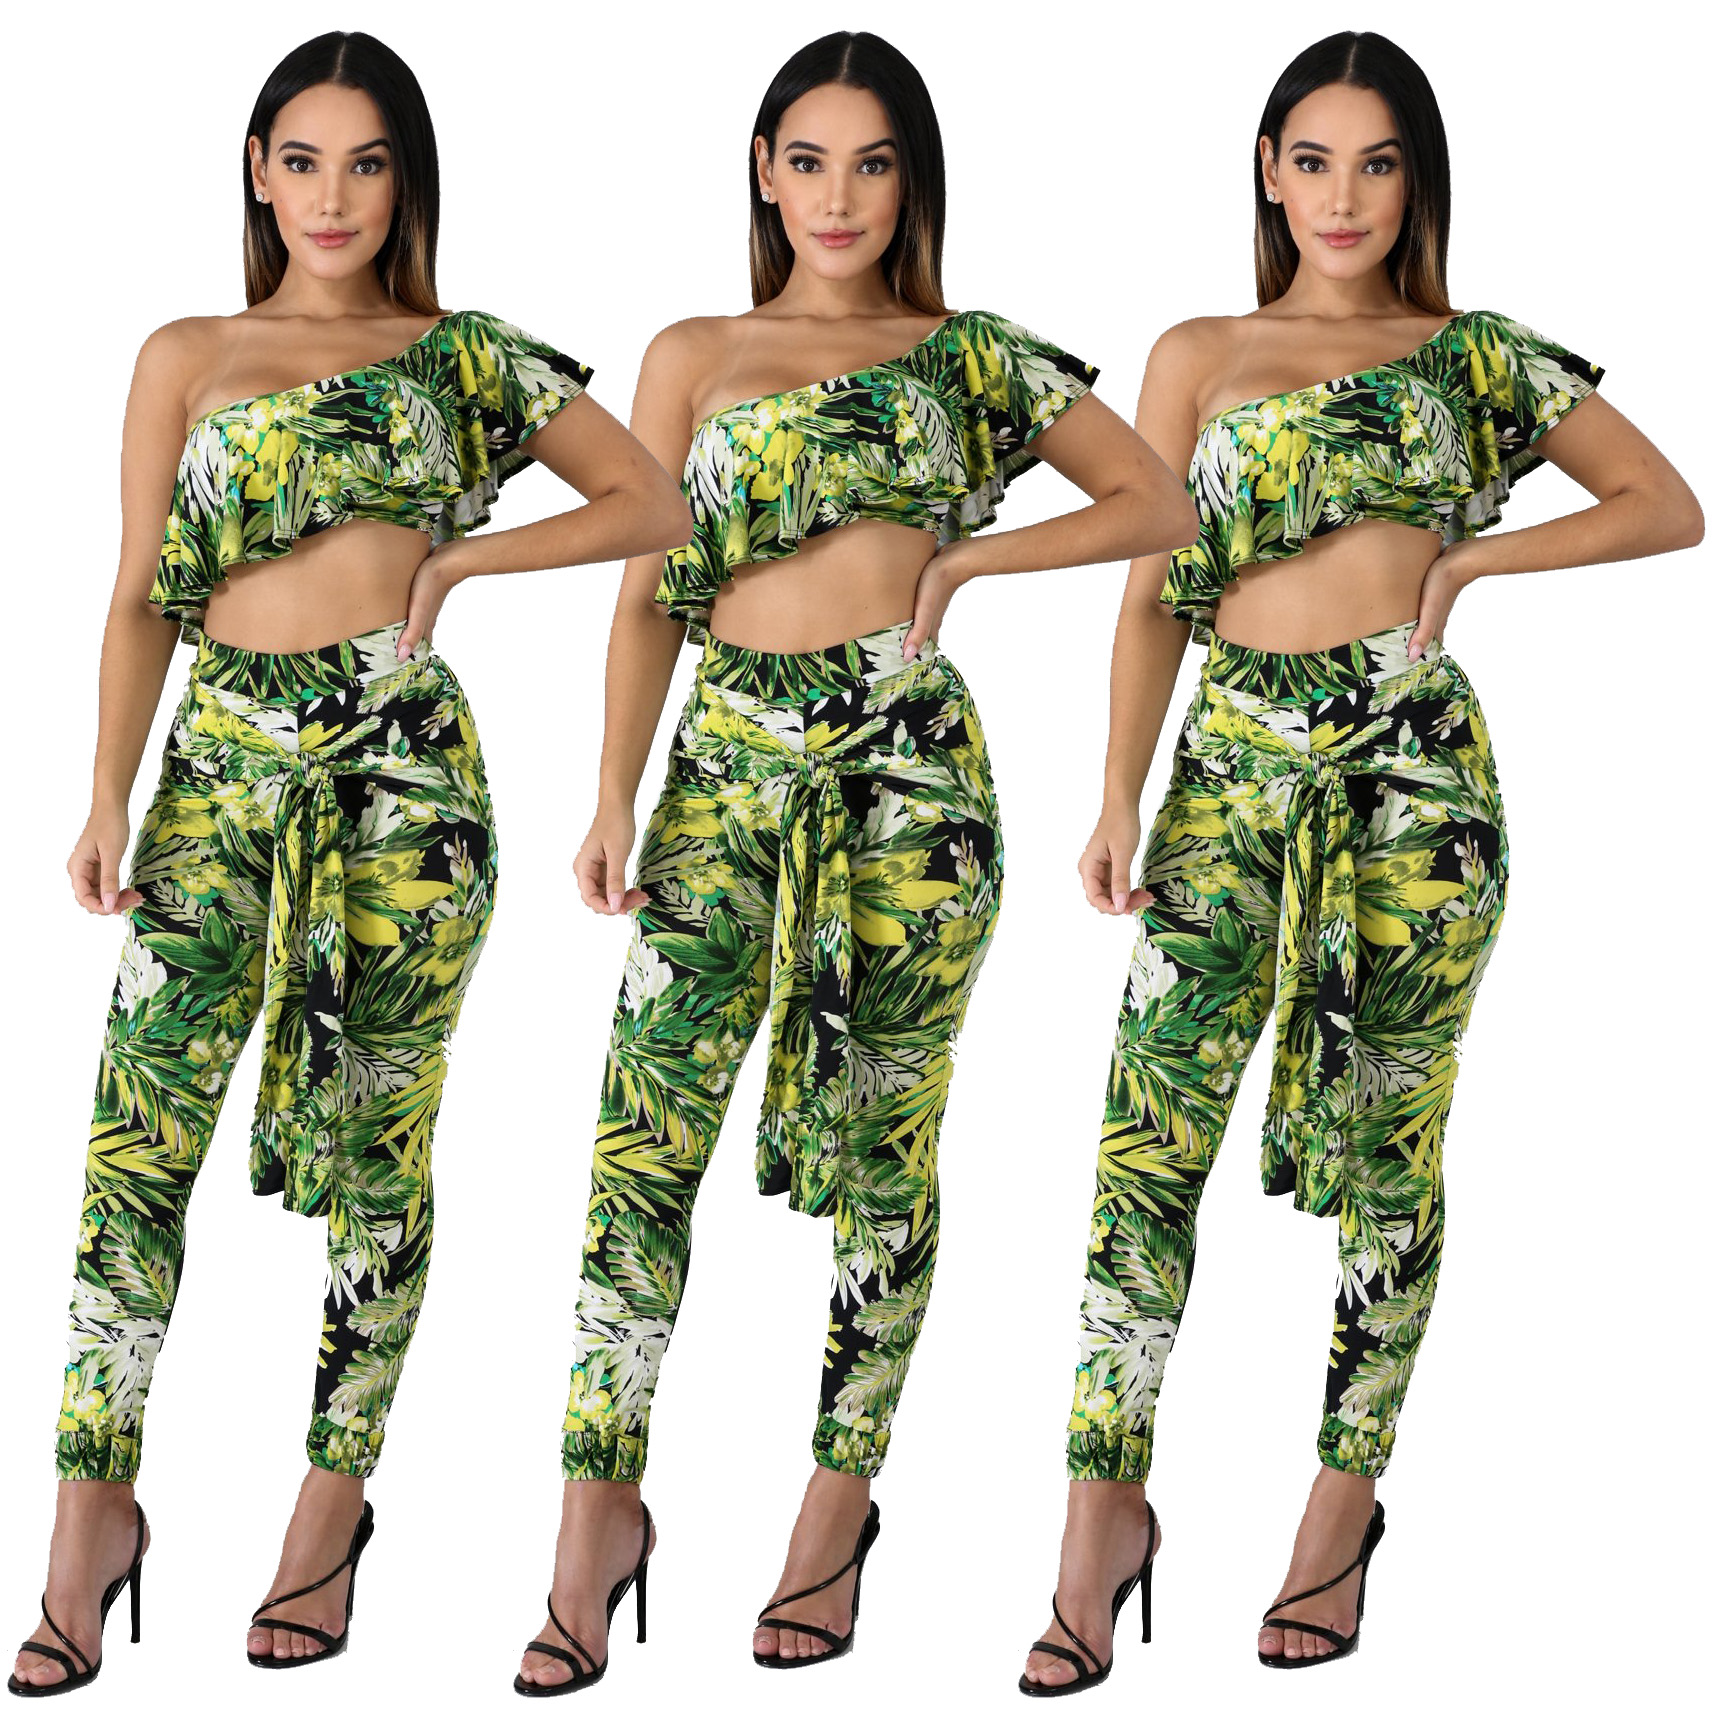 Wholesale women fashion floral pants and one shoulder top outfits SD9105